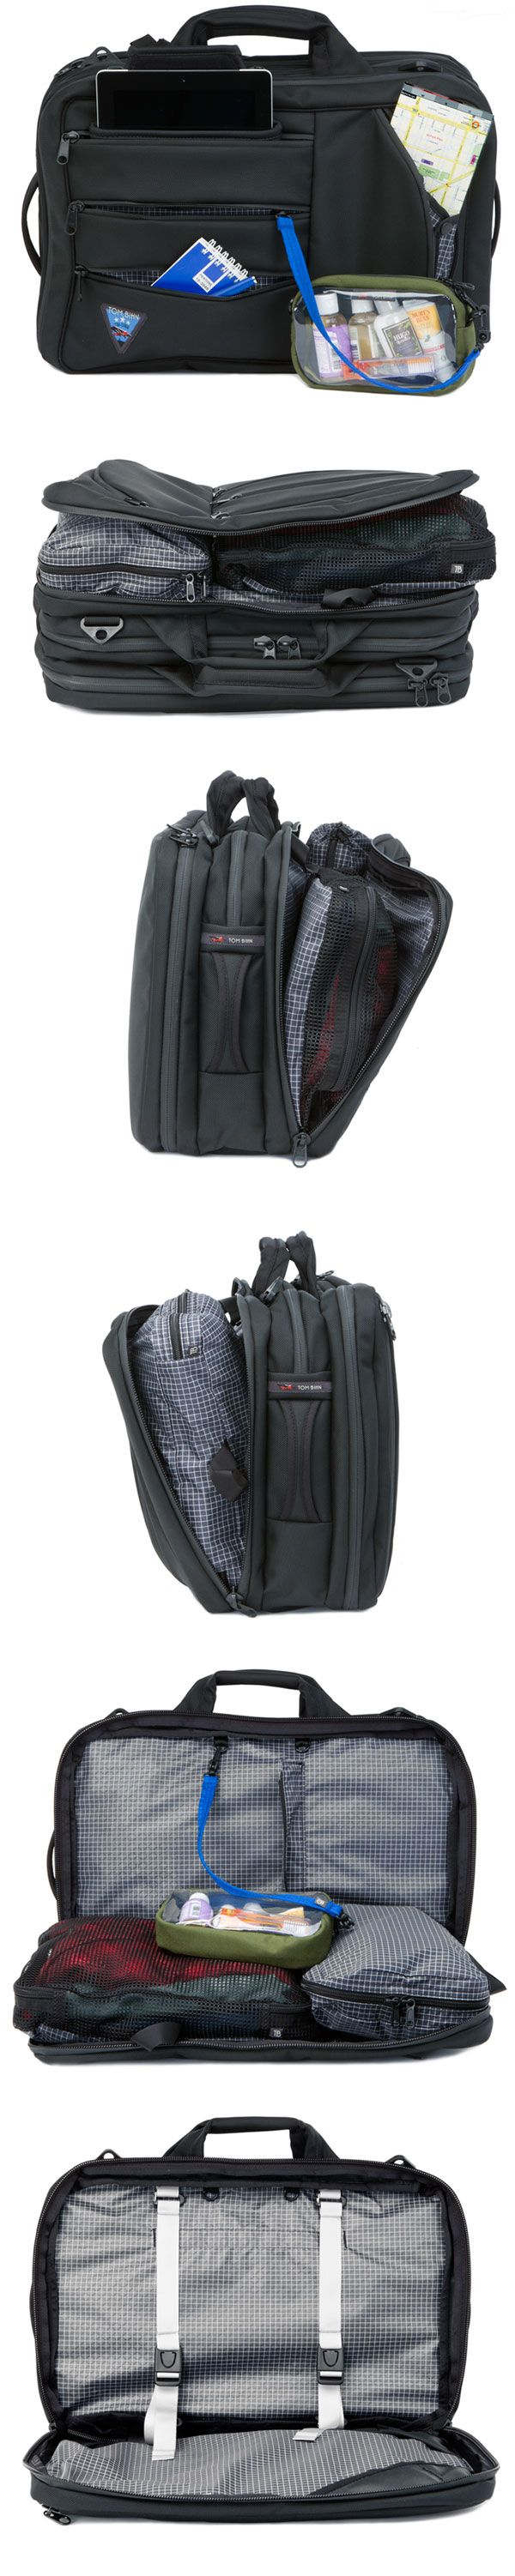 Tri-Star carry-on travel luggage. Made in USA.